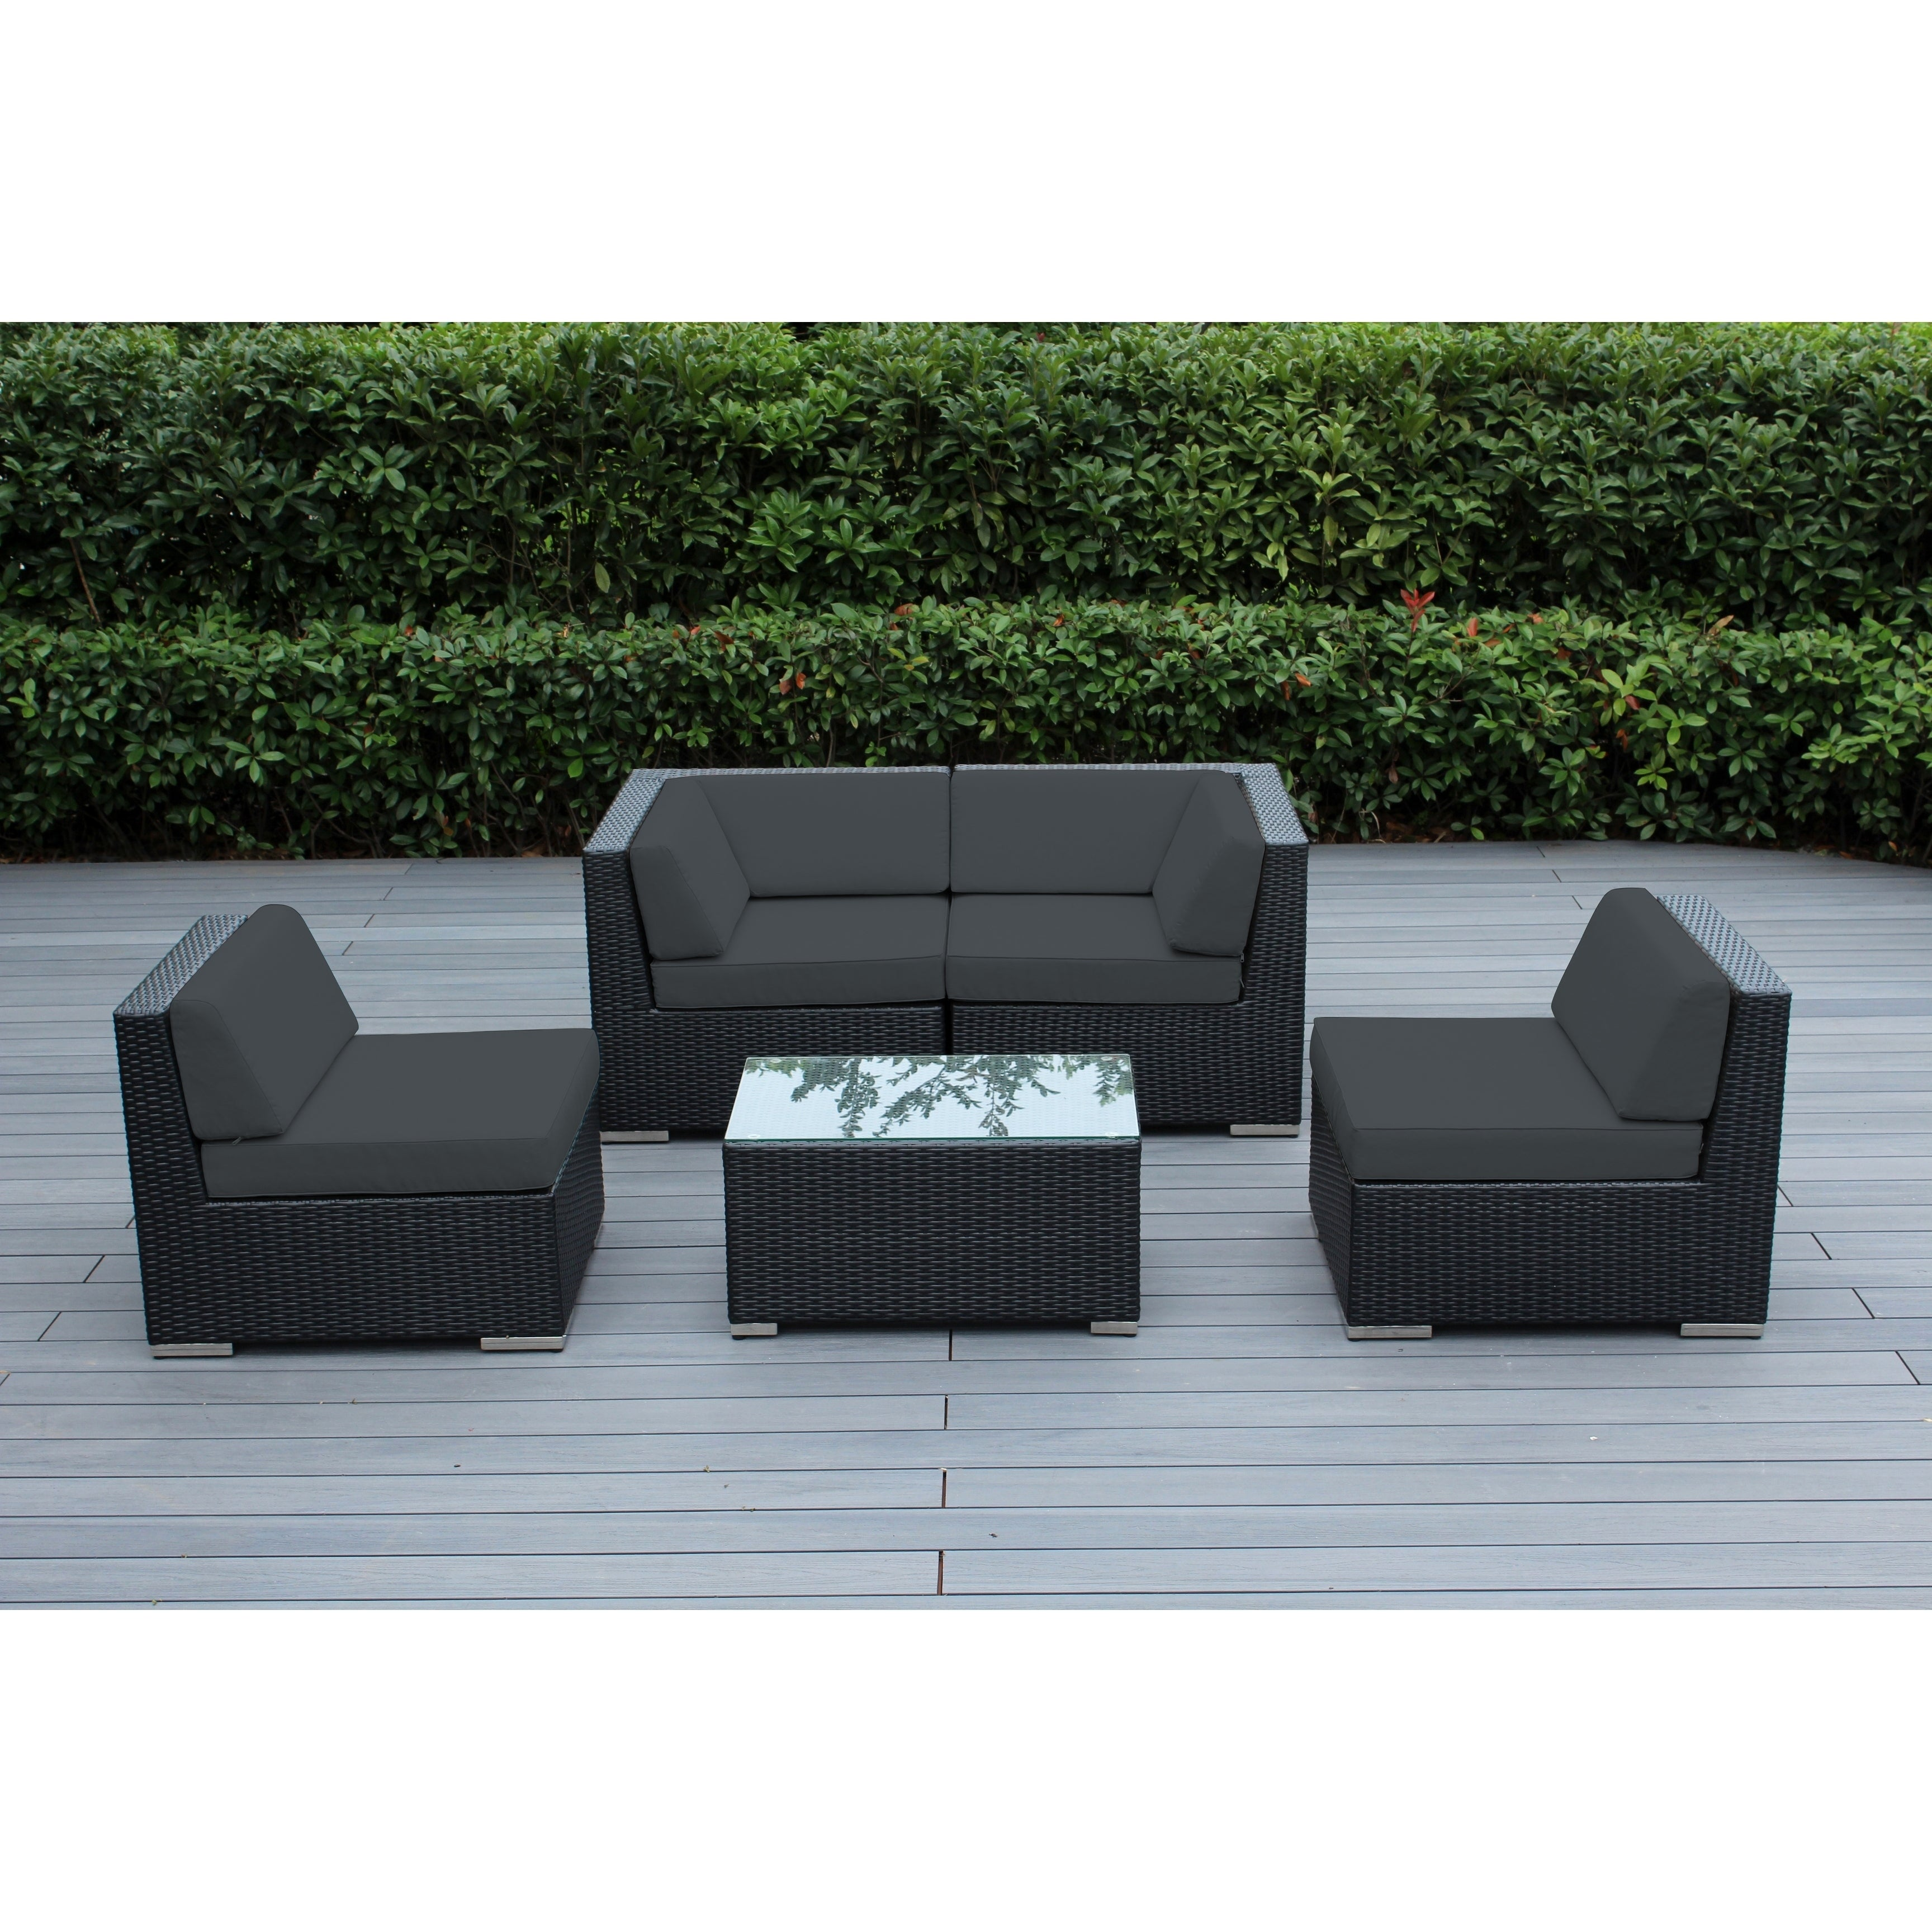 Shop ohana outdoor patio 5 piece black wicker conversation set with cushions free shipping today overstock 19459072